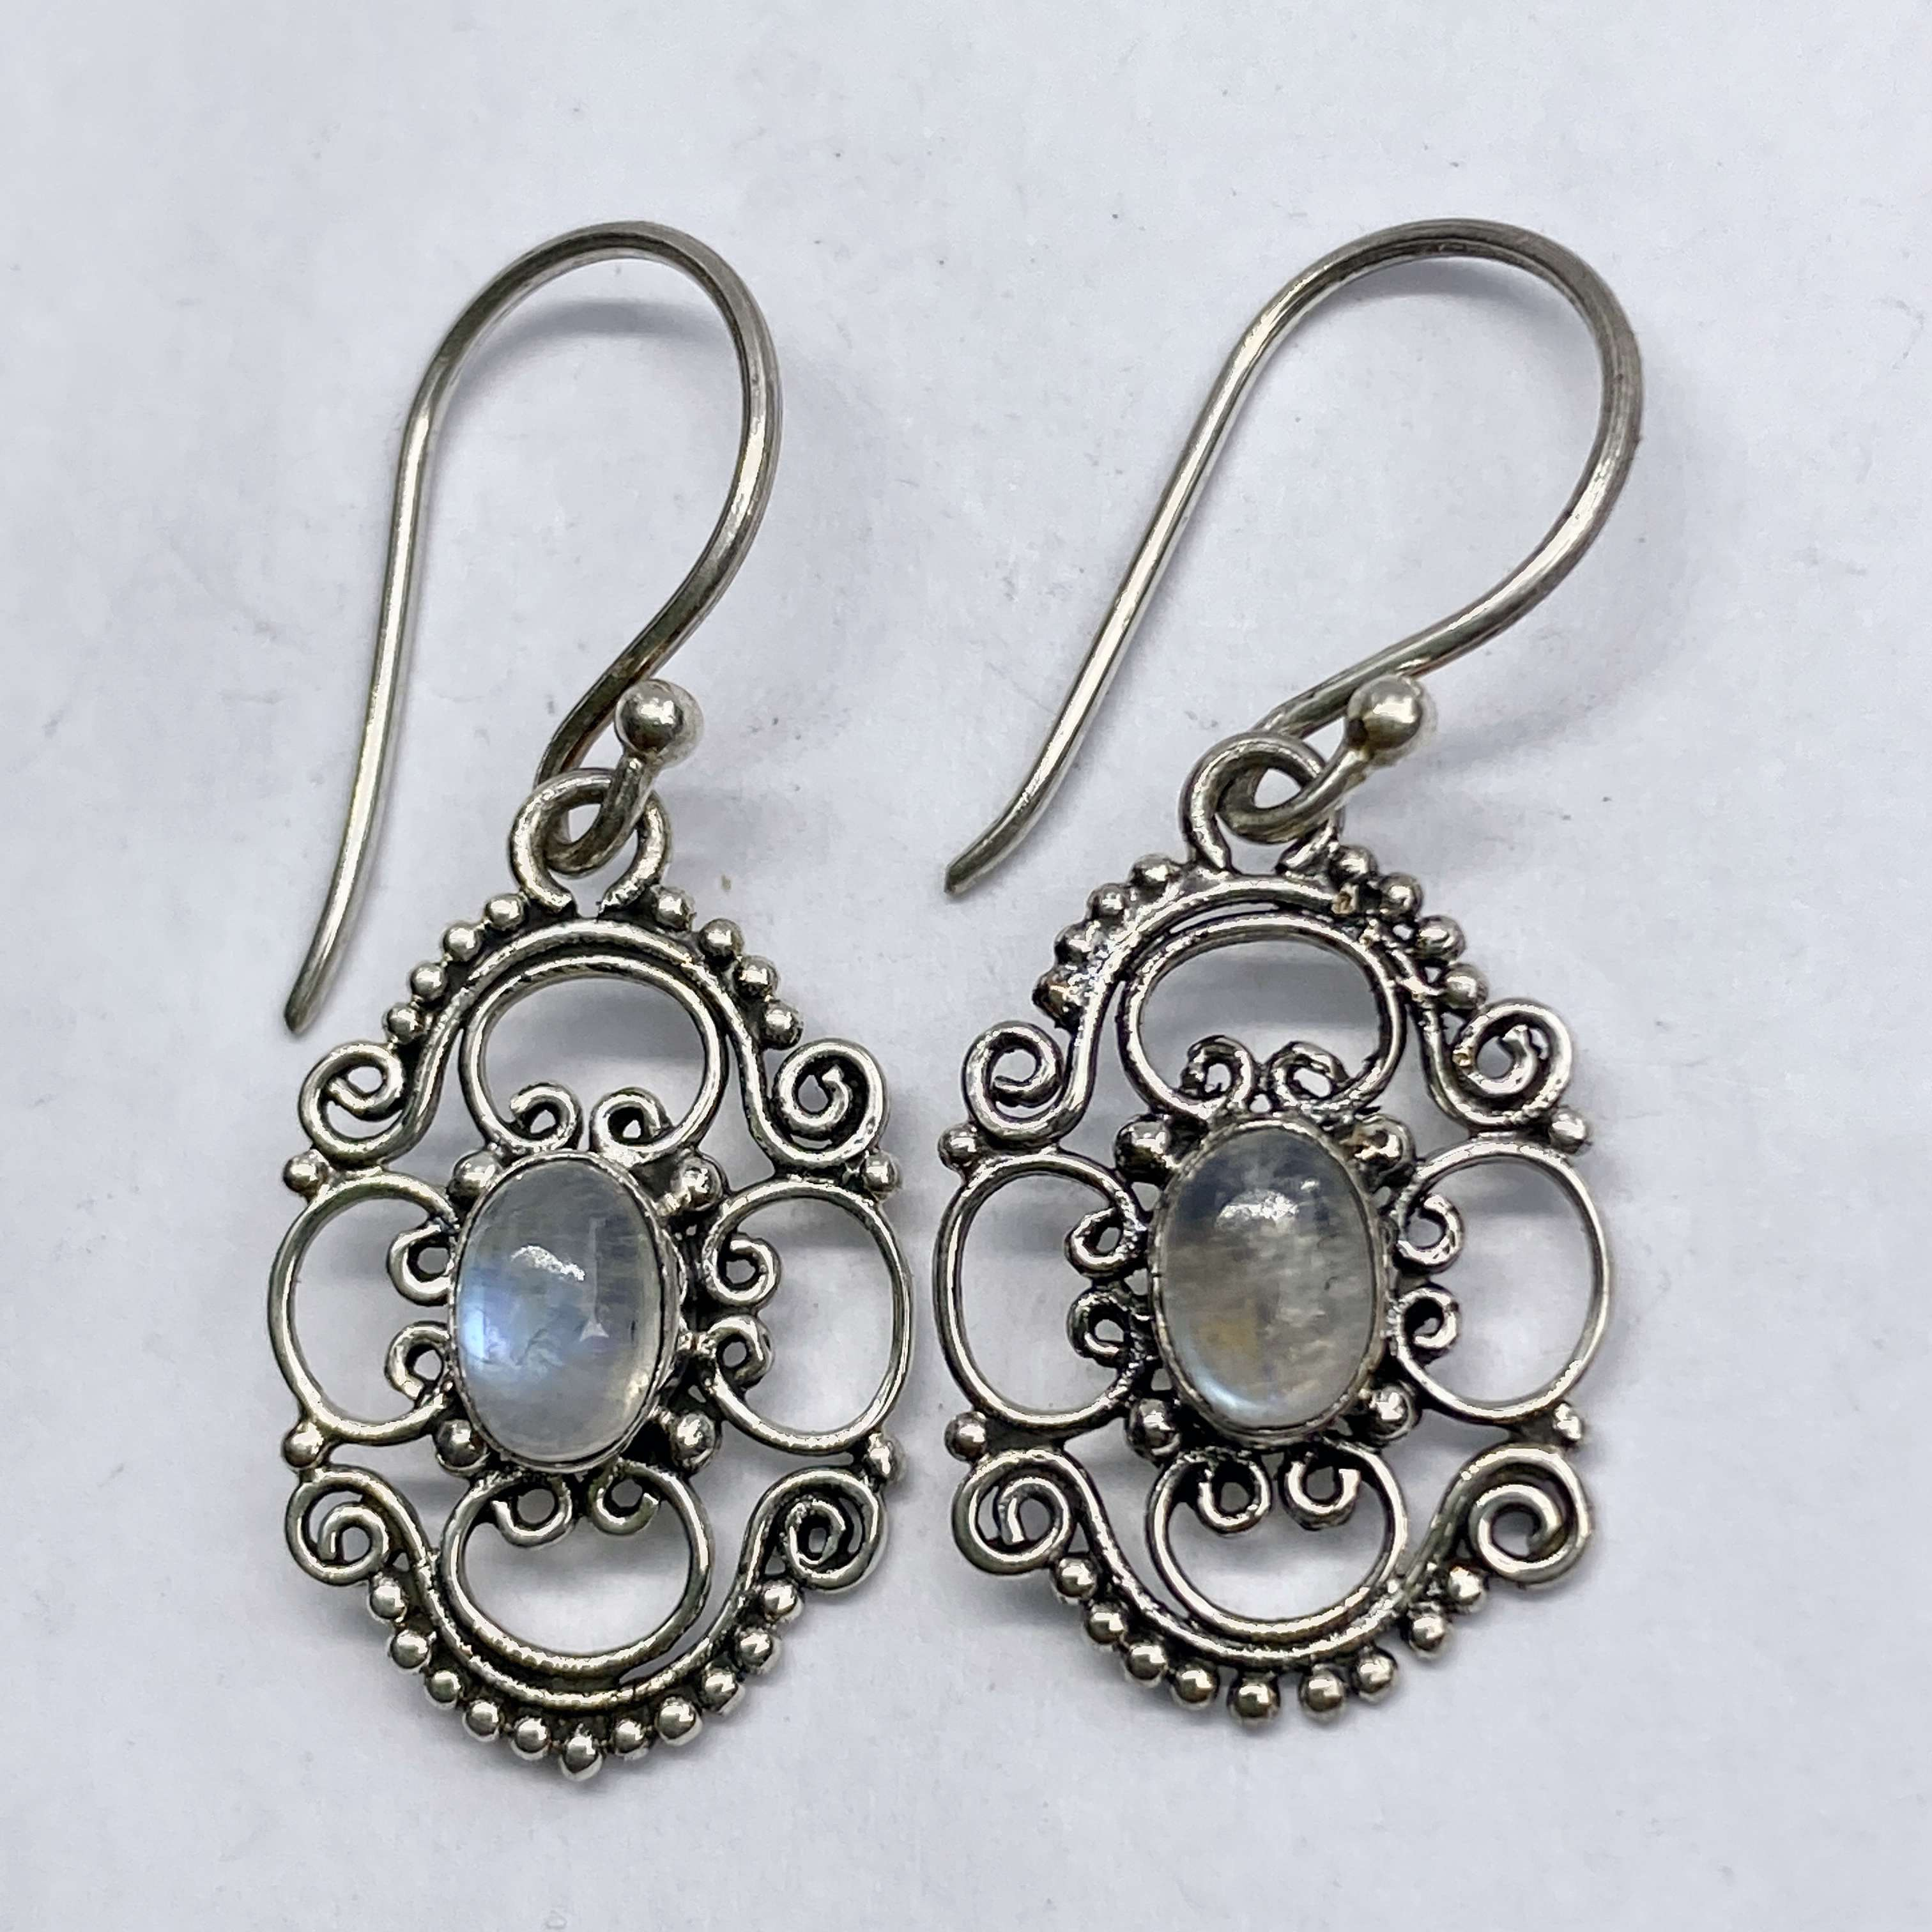 (UNIQUE 925 BALI SILVER EARRINGS WITH RAINBOW MOONSTONE)